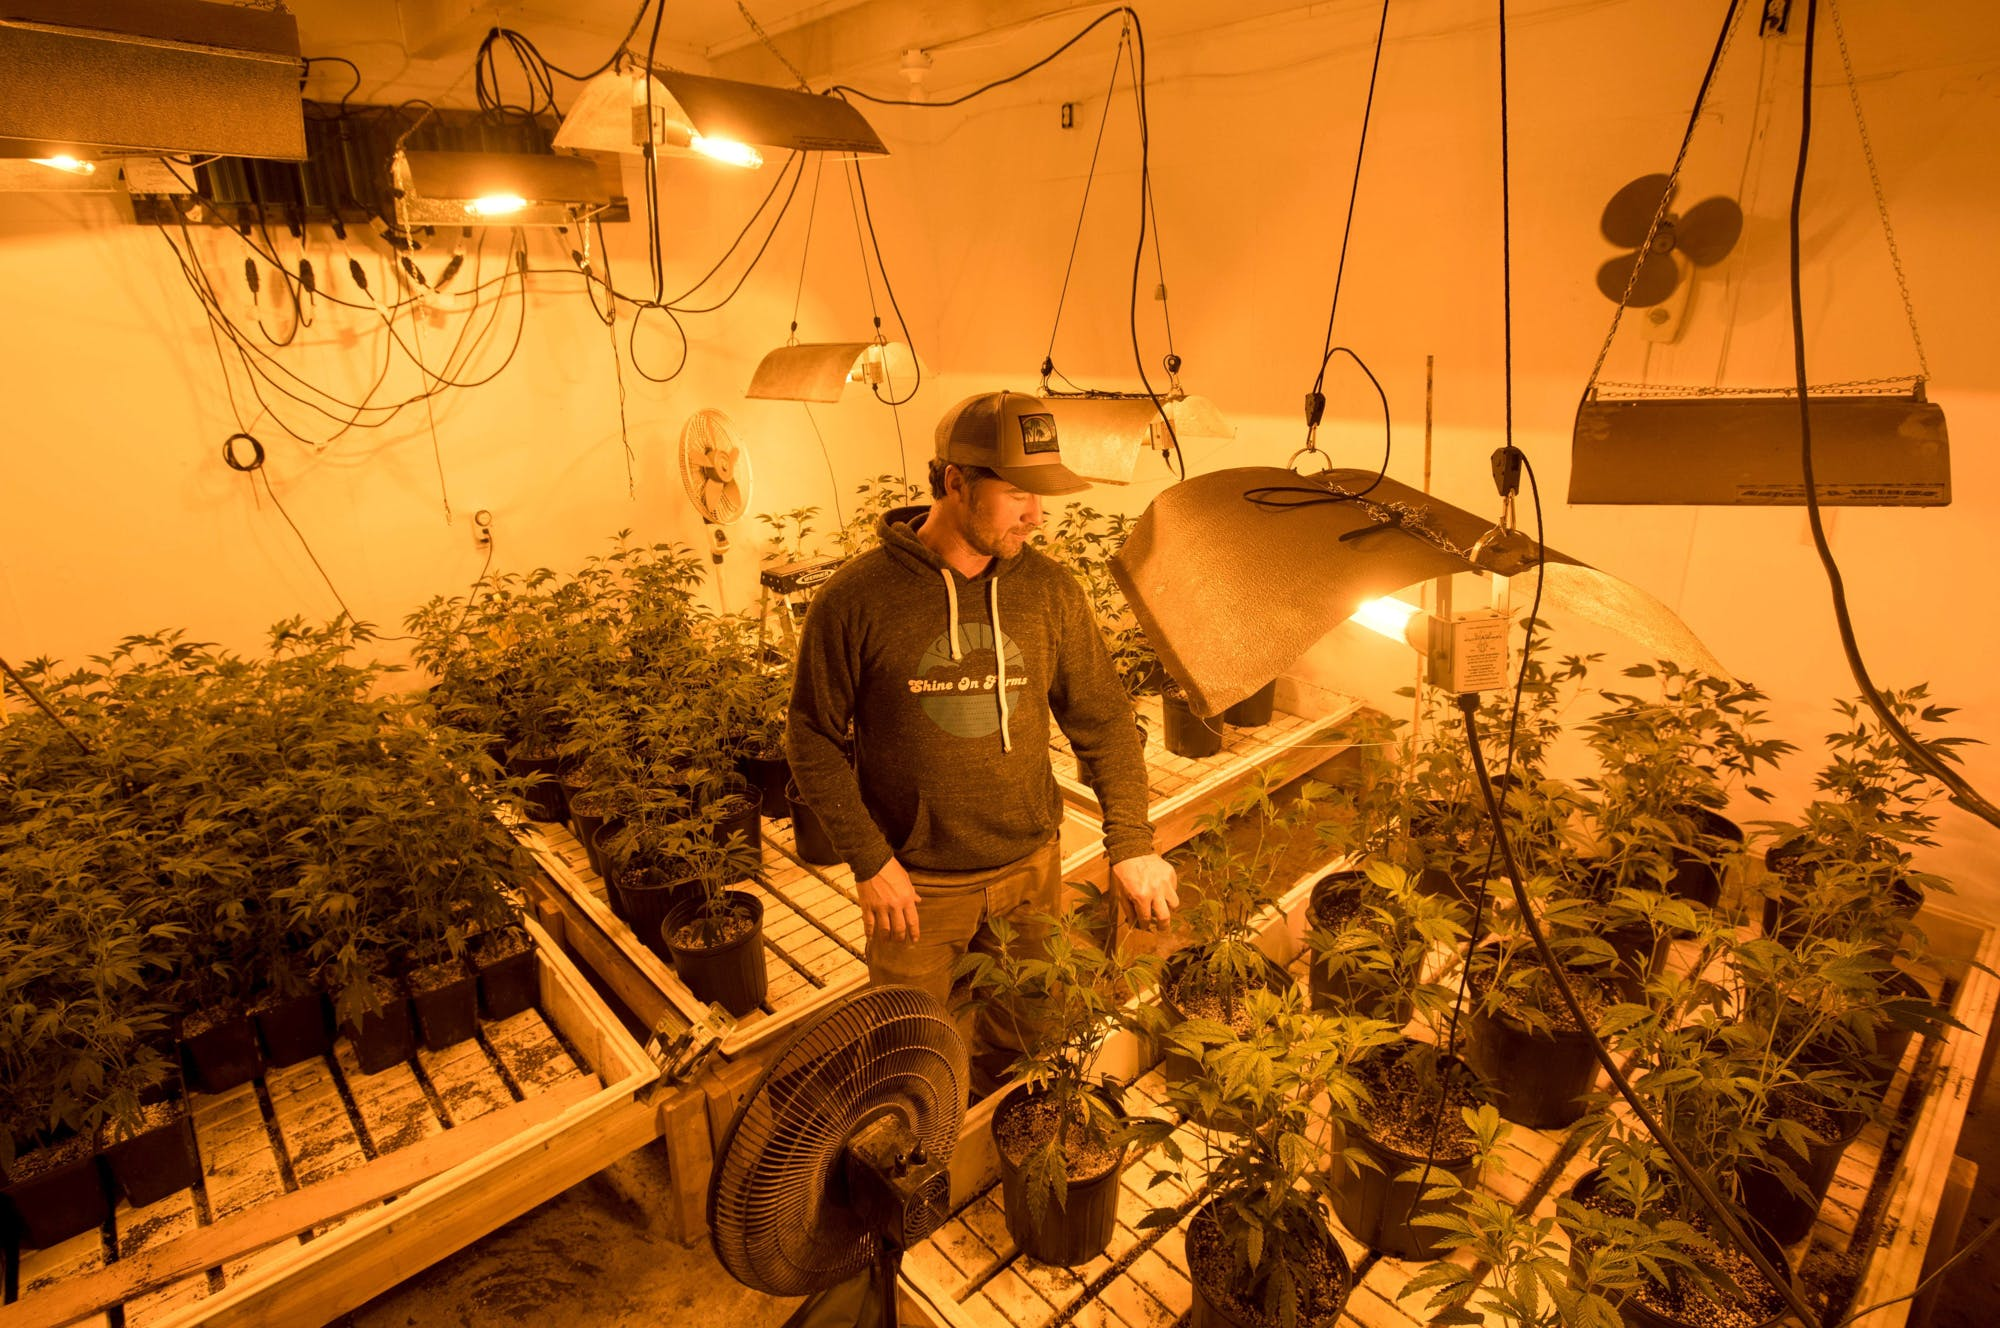 How to grow weed with as little effort as possible 2 of 3 What needs to happen for Vermont to legalize marijuana